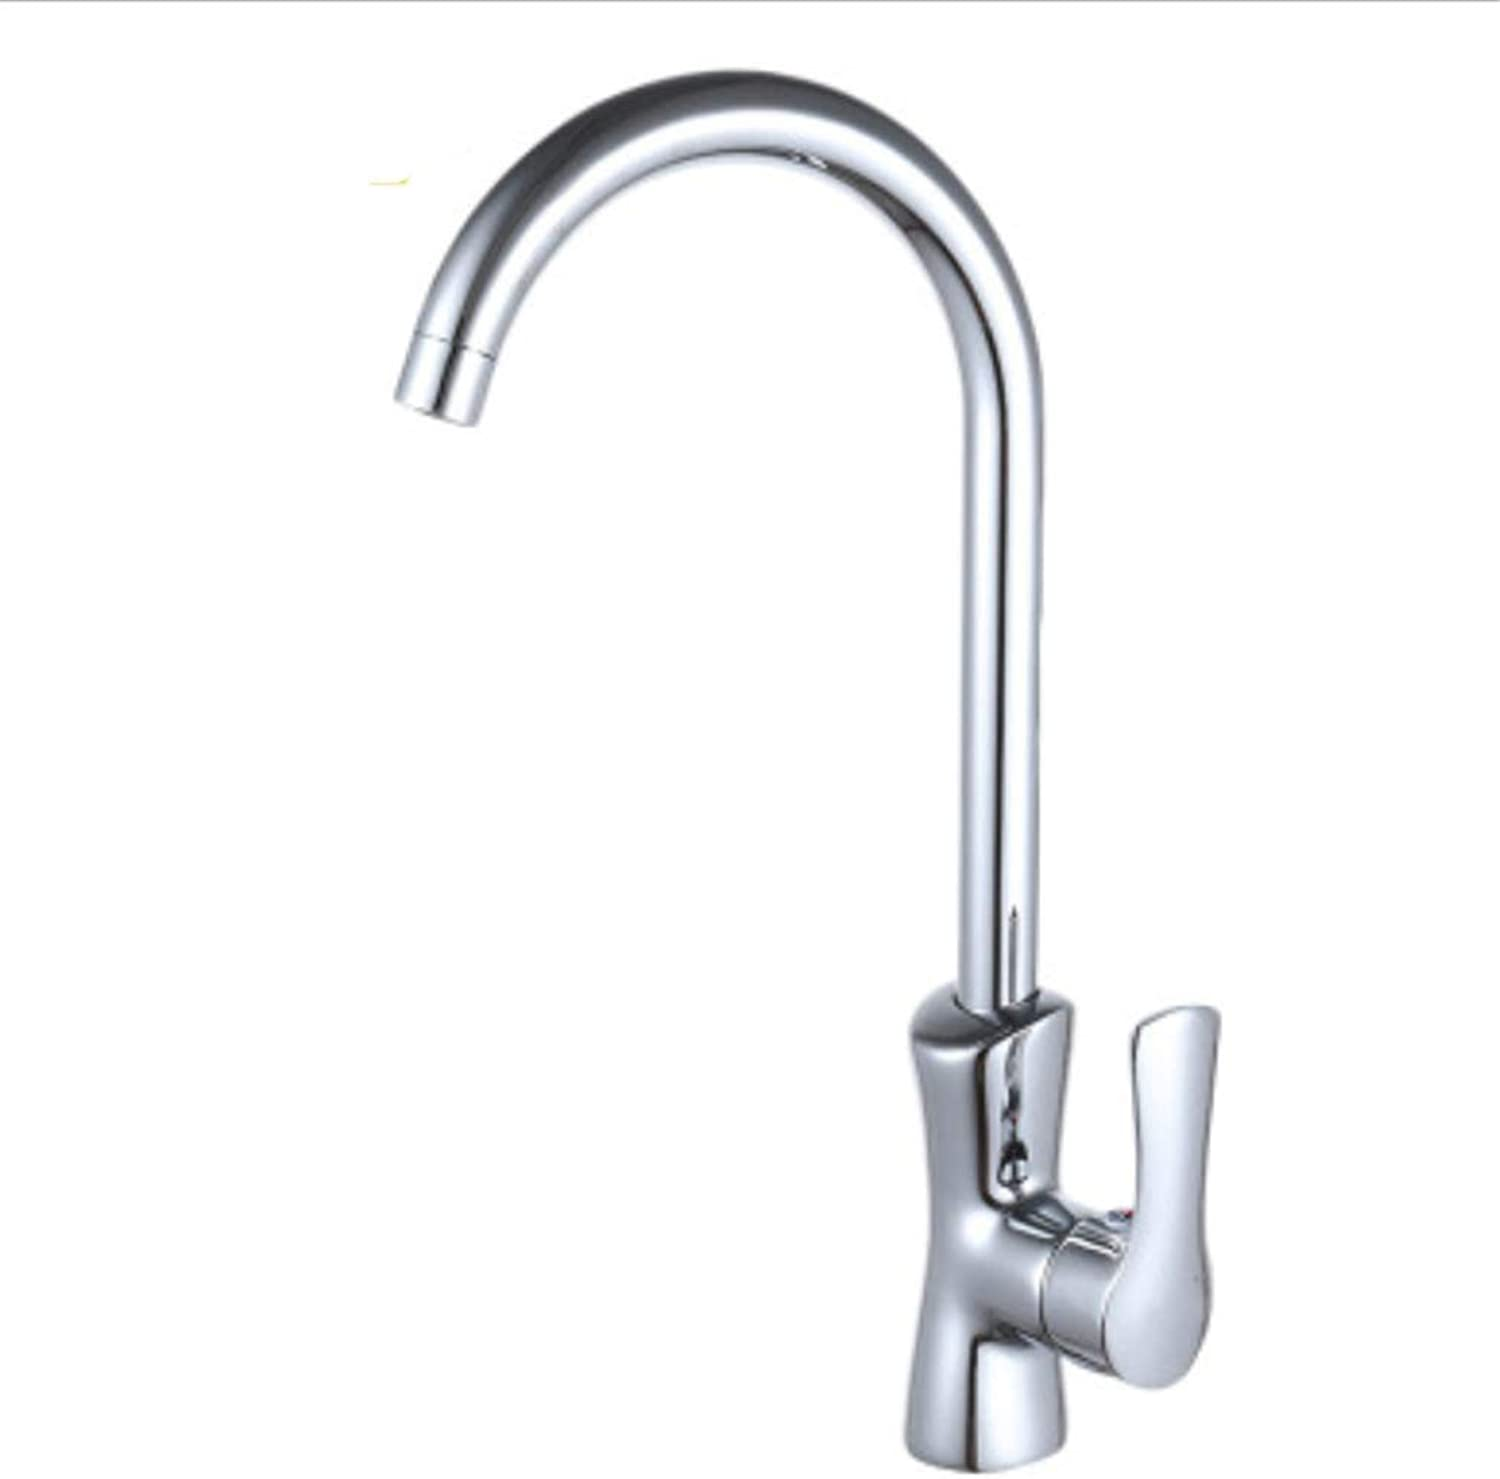 Pull Out The Pull Down Stainless Steelkitchen Faucet, Pots, Tap, Copper, Jade Pillow, Hot and Cold Water, Vegetable Basin, Sink, redary Faucet.